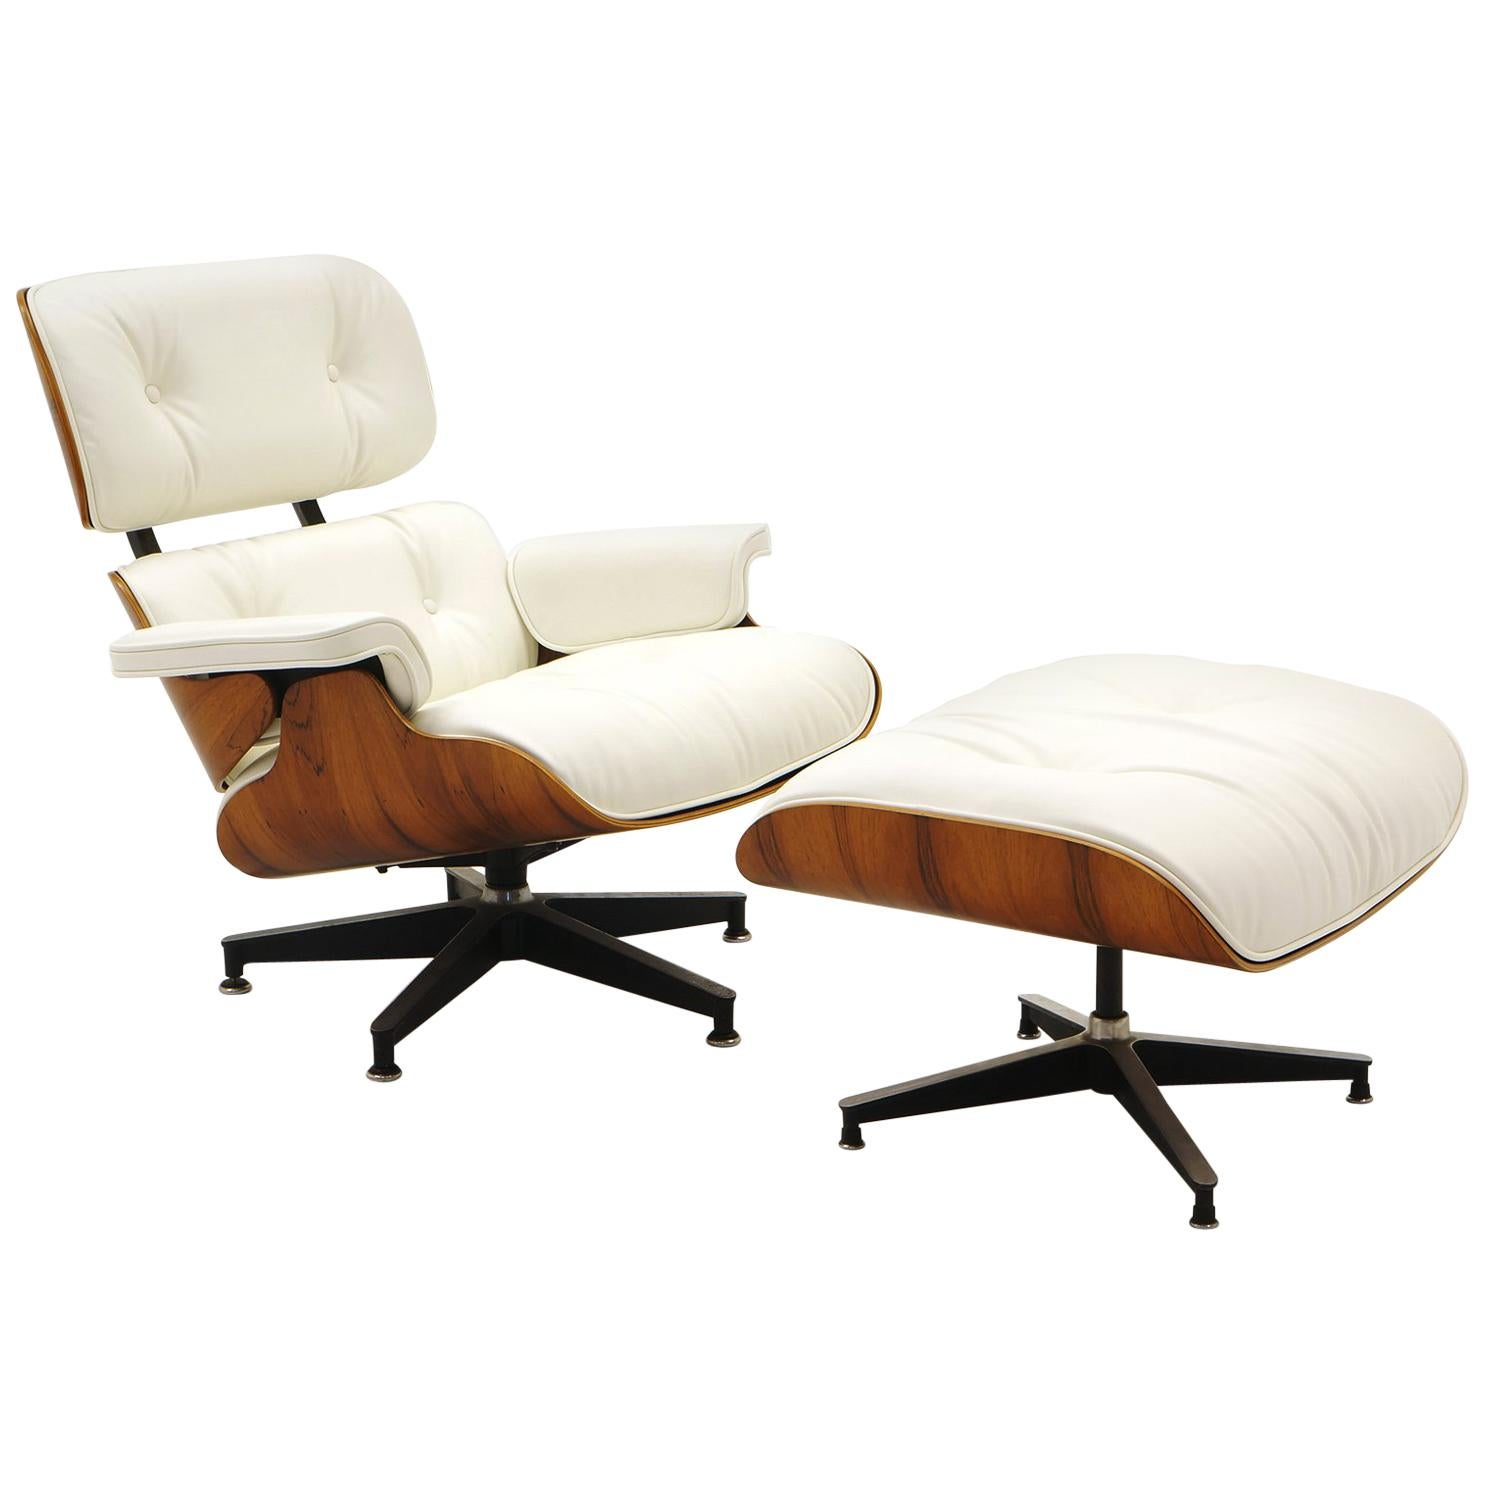 Eanes Chair Lounge Chair And Ottoman Charles Ray Eames Brazilian Rosewood White Leather